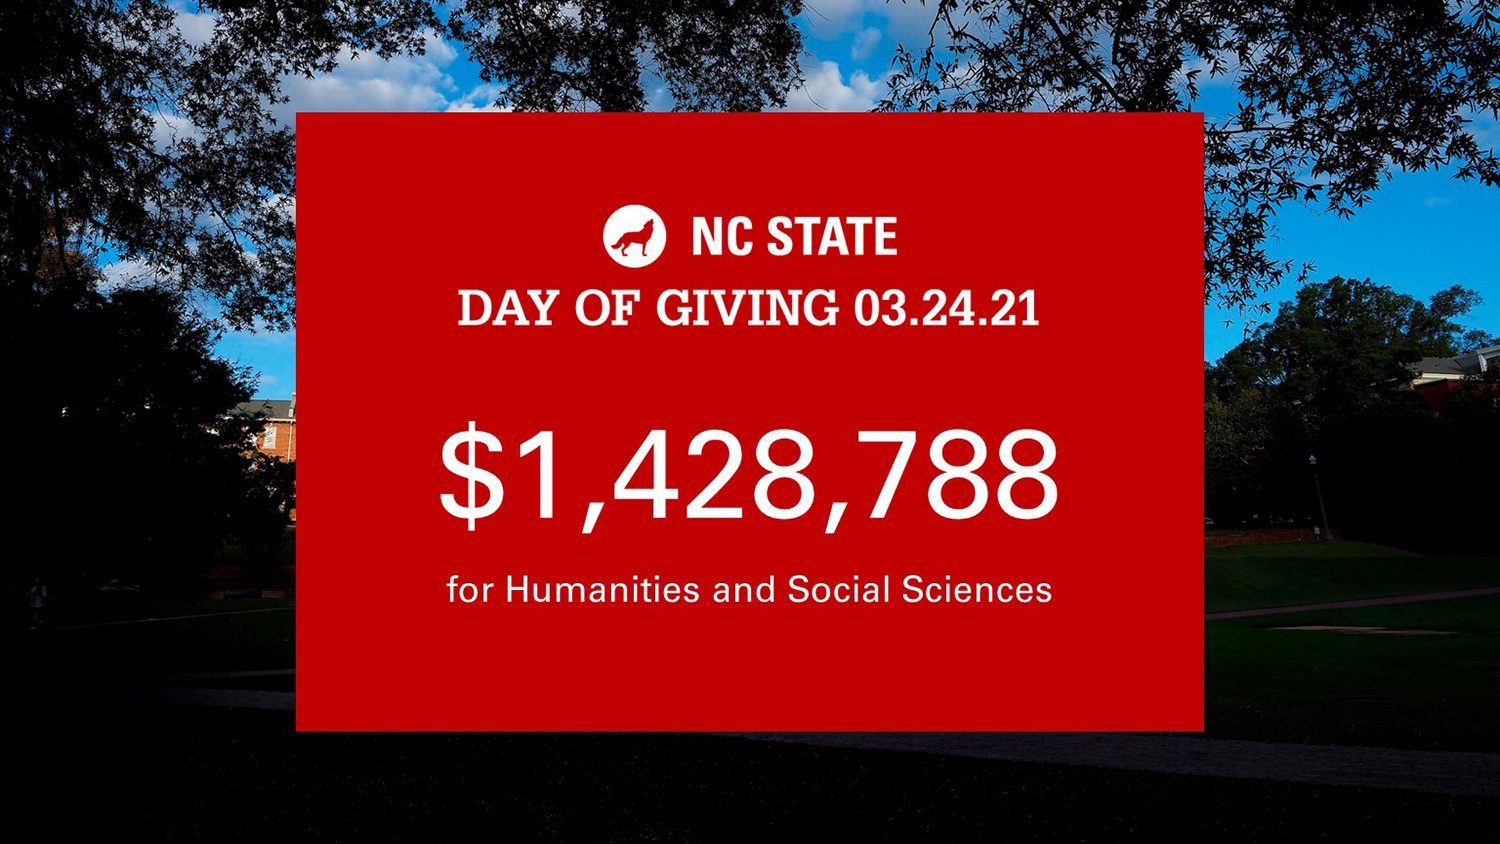 A graphic displays the total number raised for Humanities and Social Sciences during Day of Giving: $1,428,788